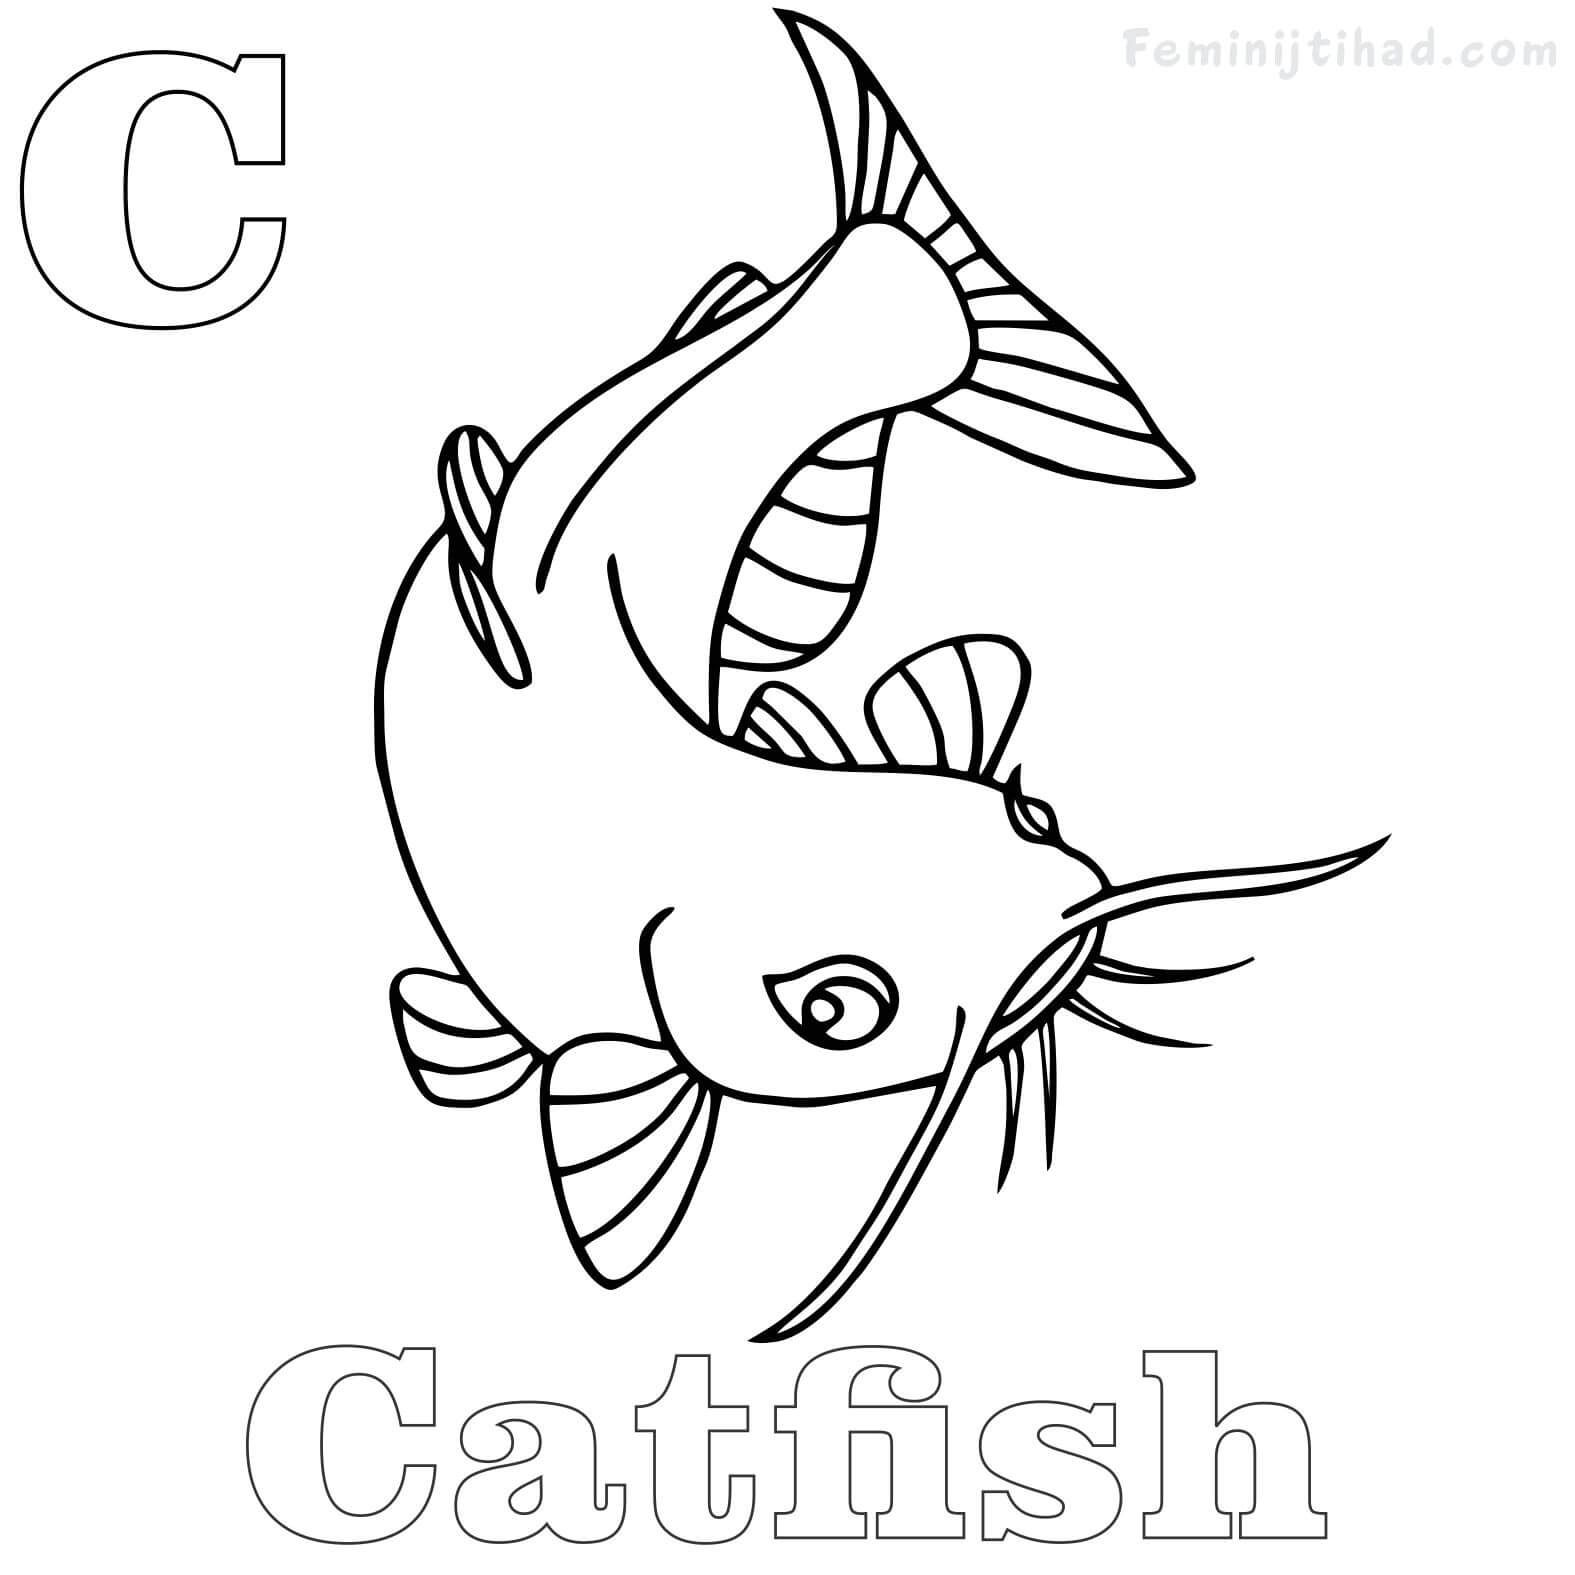 Catfish Coloring Pages Printable For Free Free Coloring Sheets Coloring Book Pages Coloring Books Coloring Pages